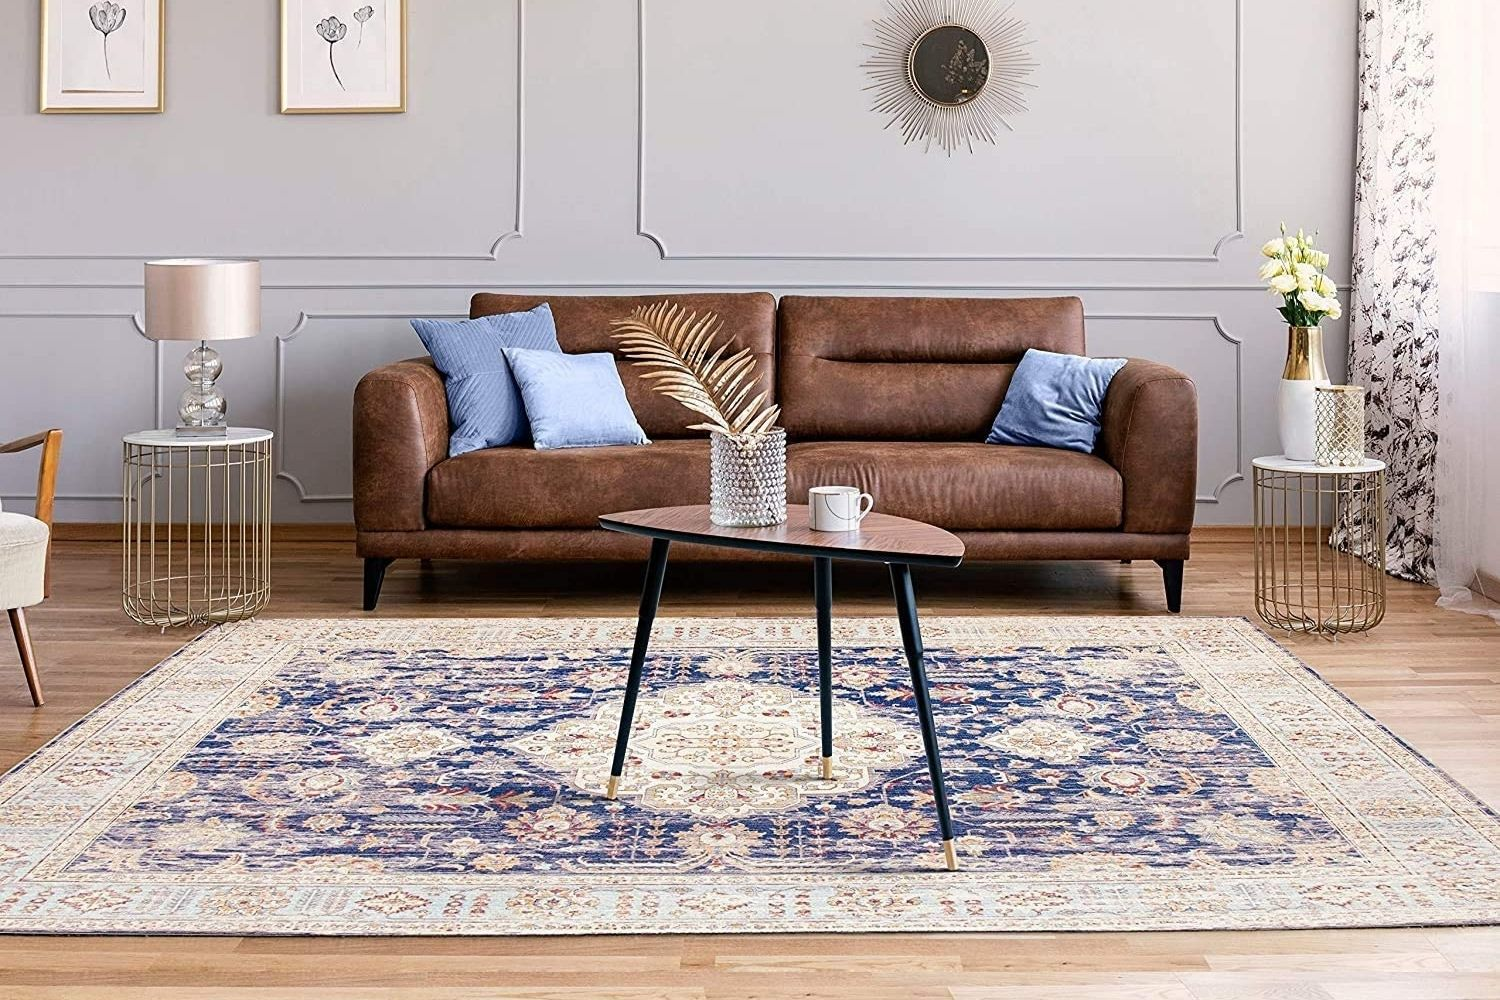 The Best Area Rugs For Your Home In 2020 Bob Vila